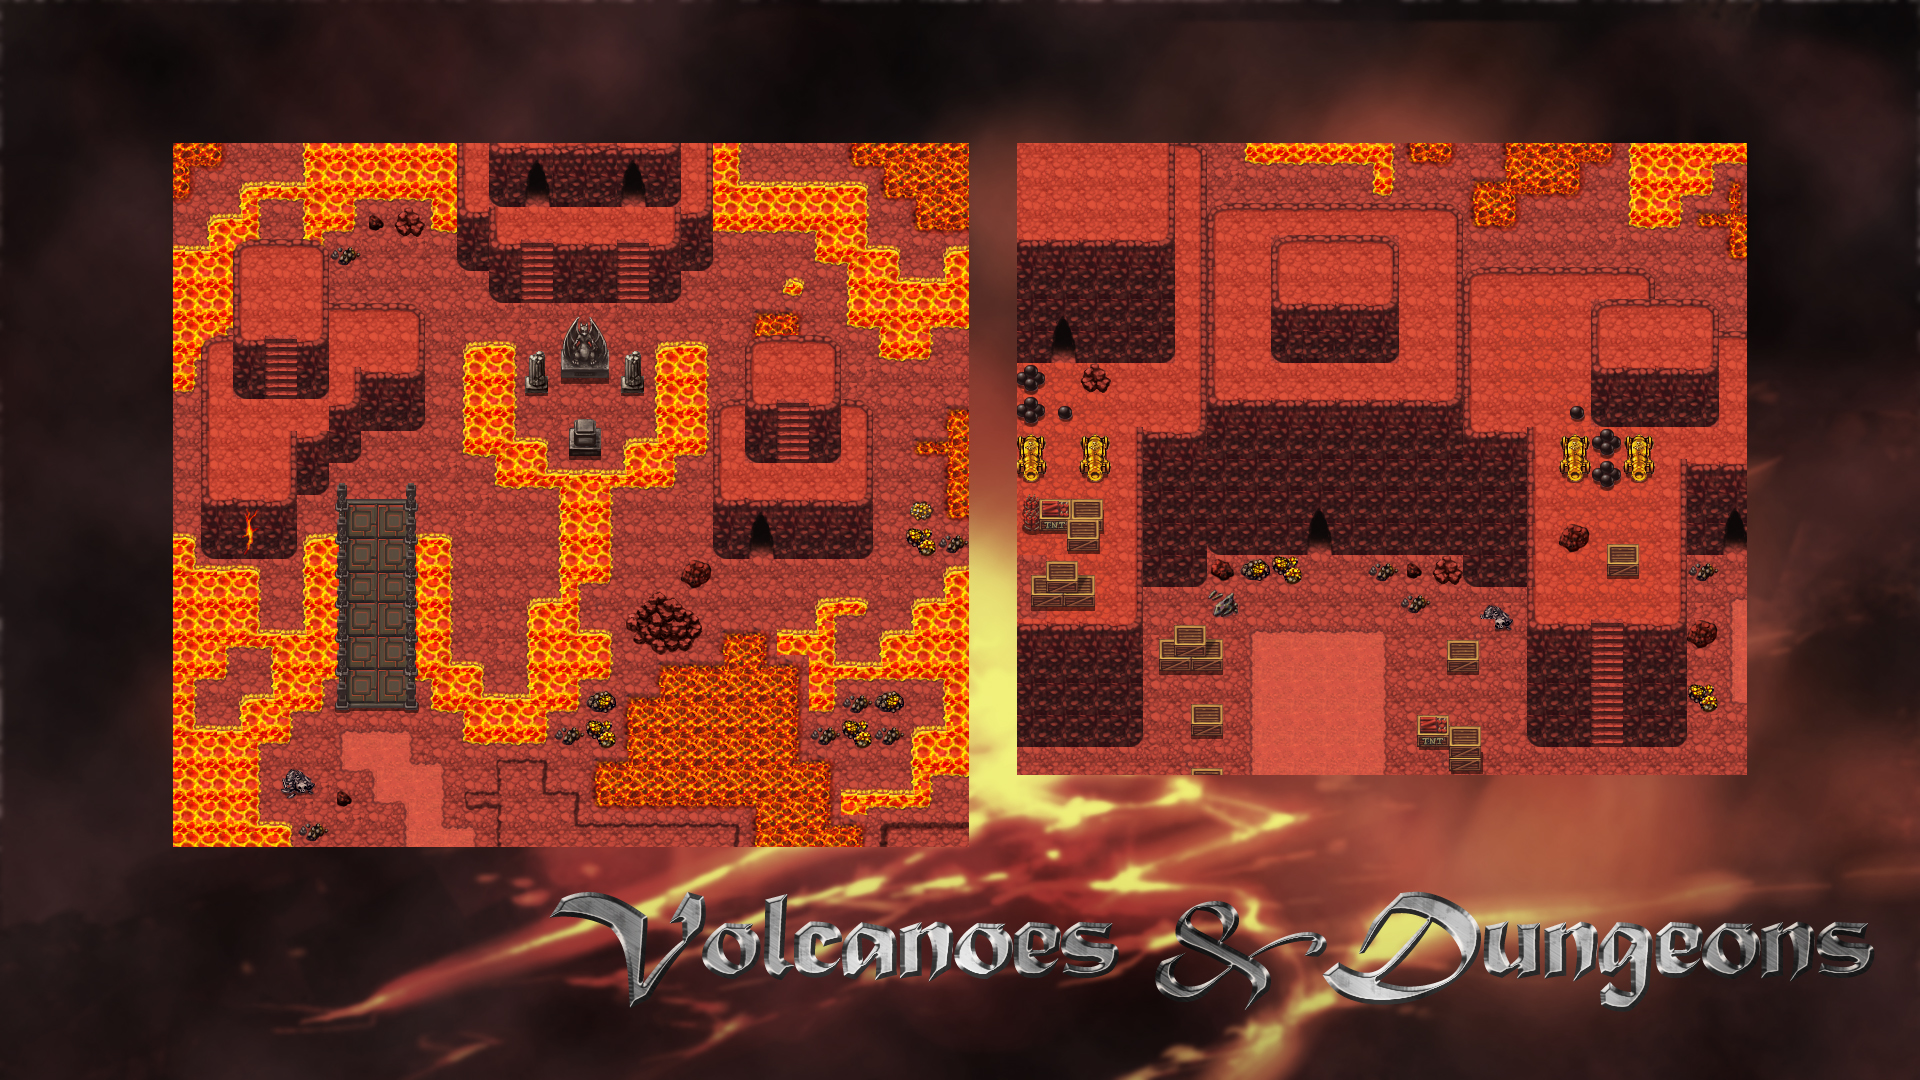 World map generator rpg maker vx ace world usa states map collections world map generator rpg maker vx ace with rpg maker fire d4b711q3c 1uwlofanuqzal38fkw2pcqjzkoenwk9yu on rpg map gumiabroncs Image collections